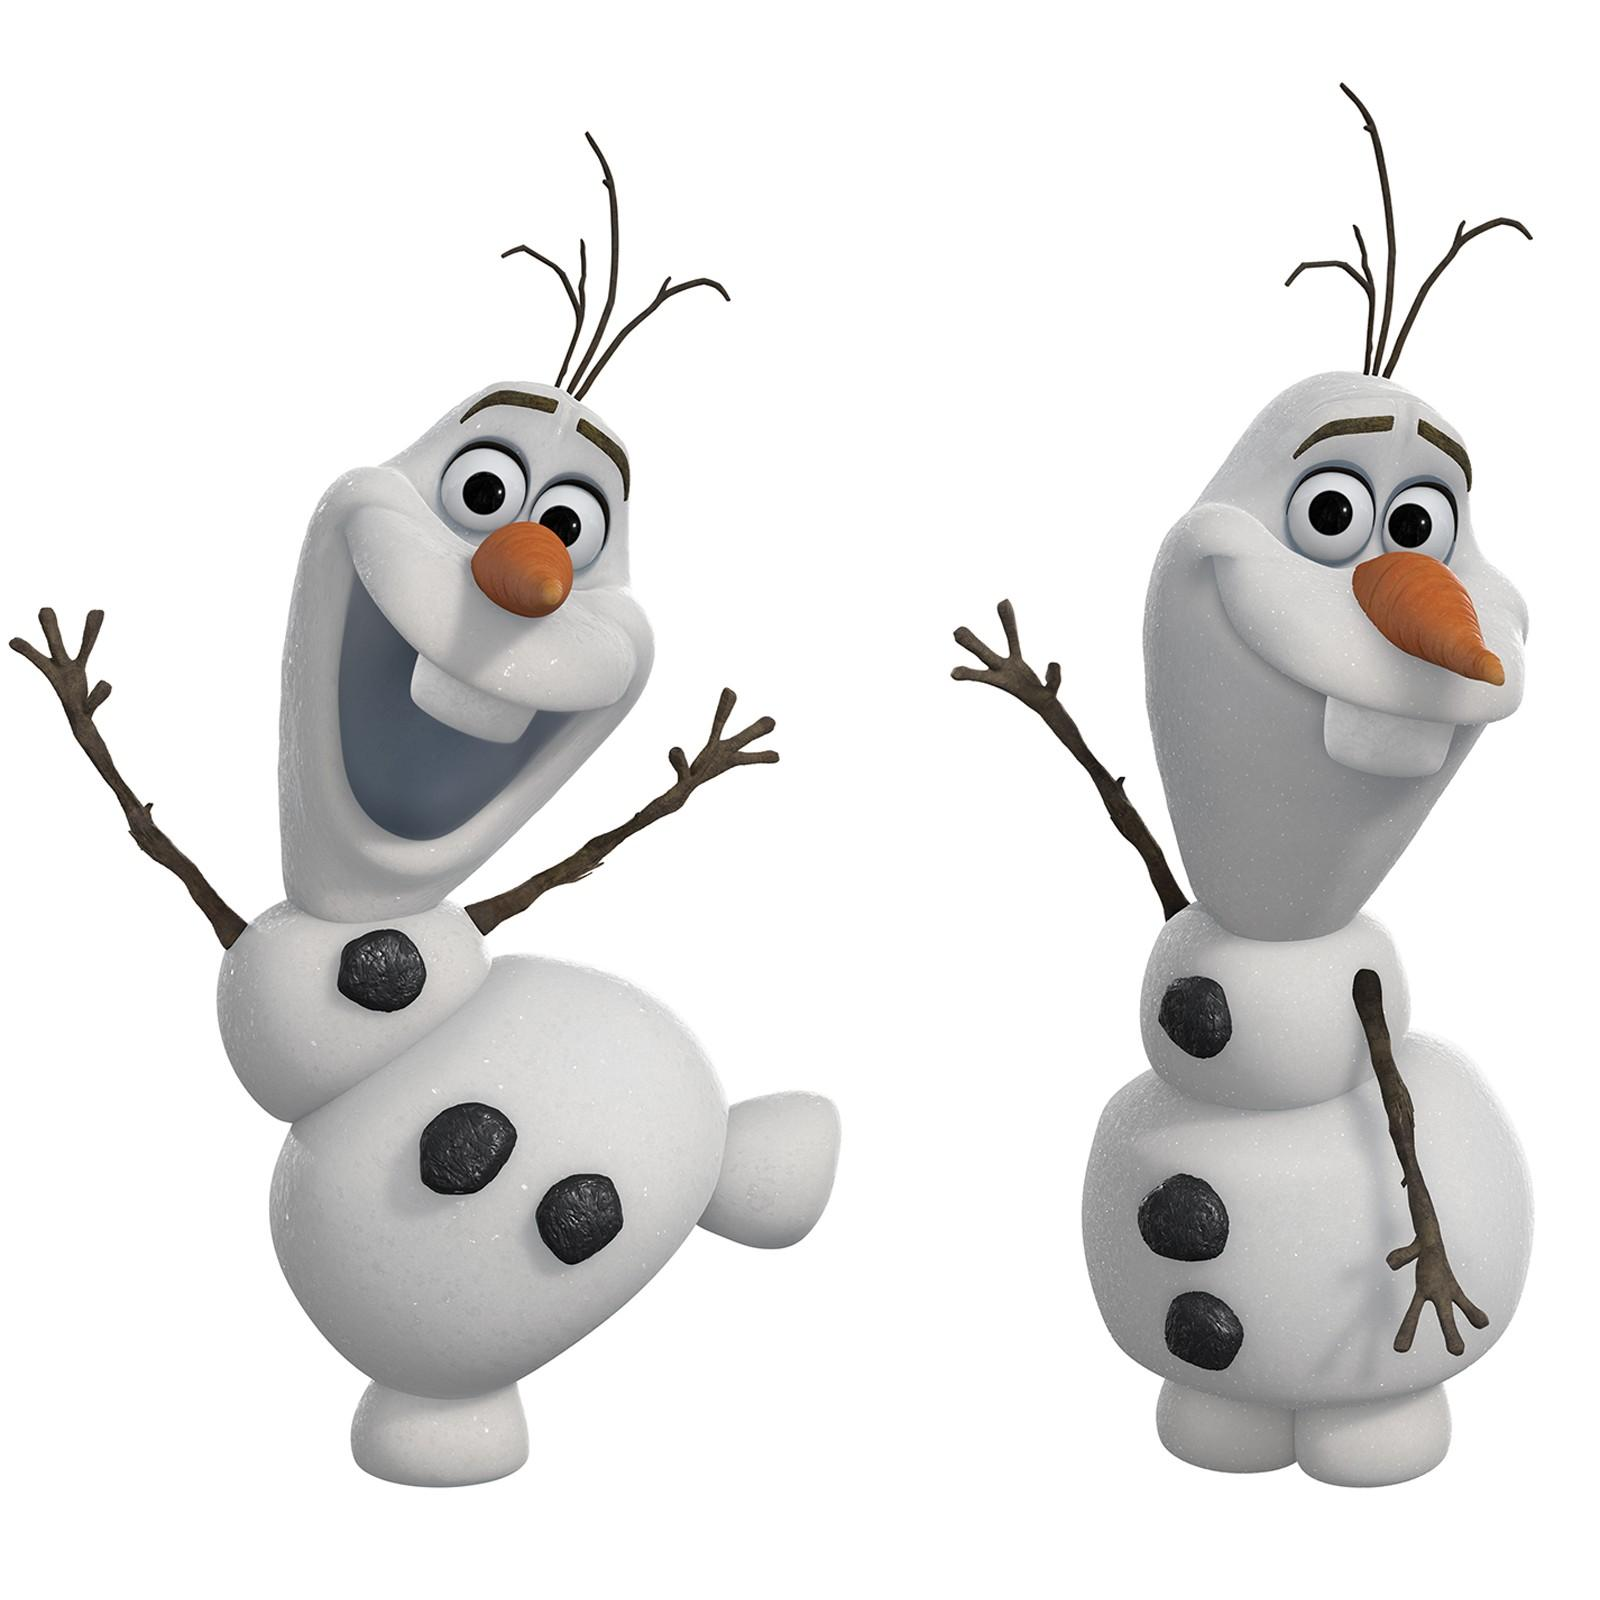 Free Animated Frozen Cliparts, Download Free Clip Art, Free.